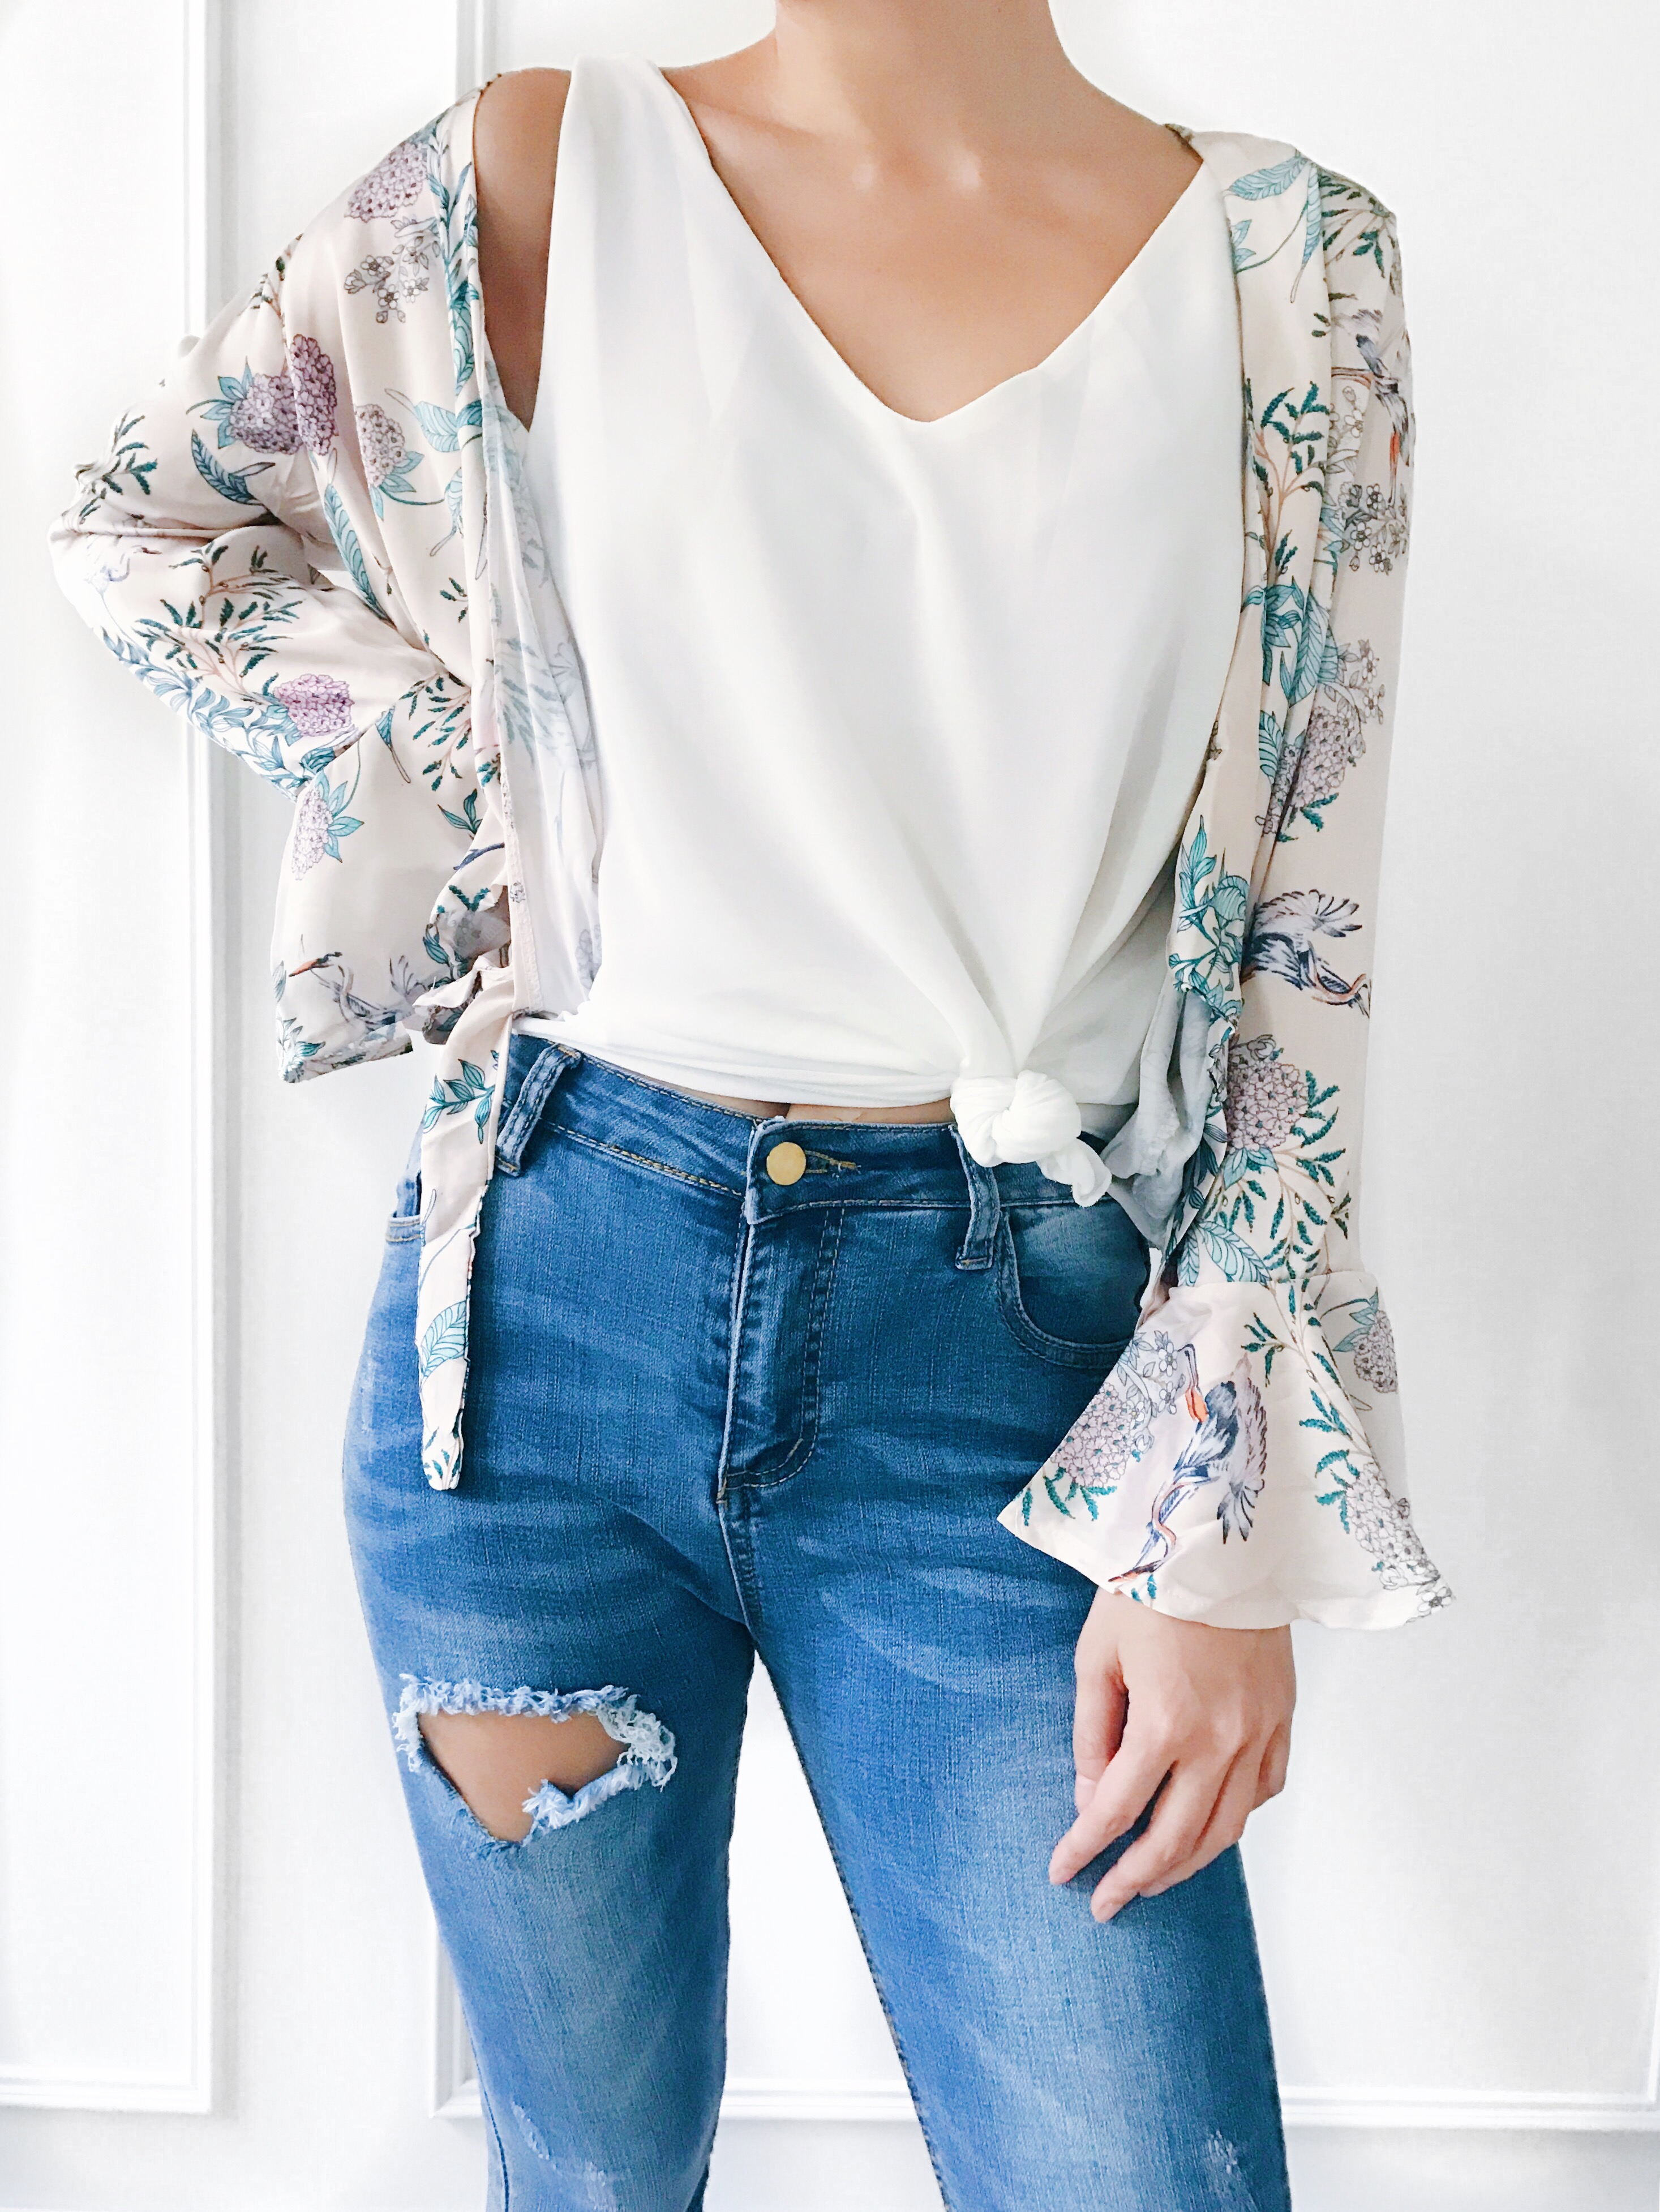 the latest trends and outfit ideas for fall 2017 plus a 100